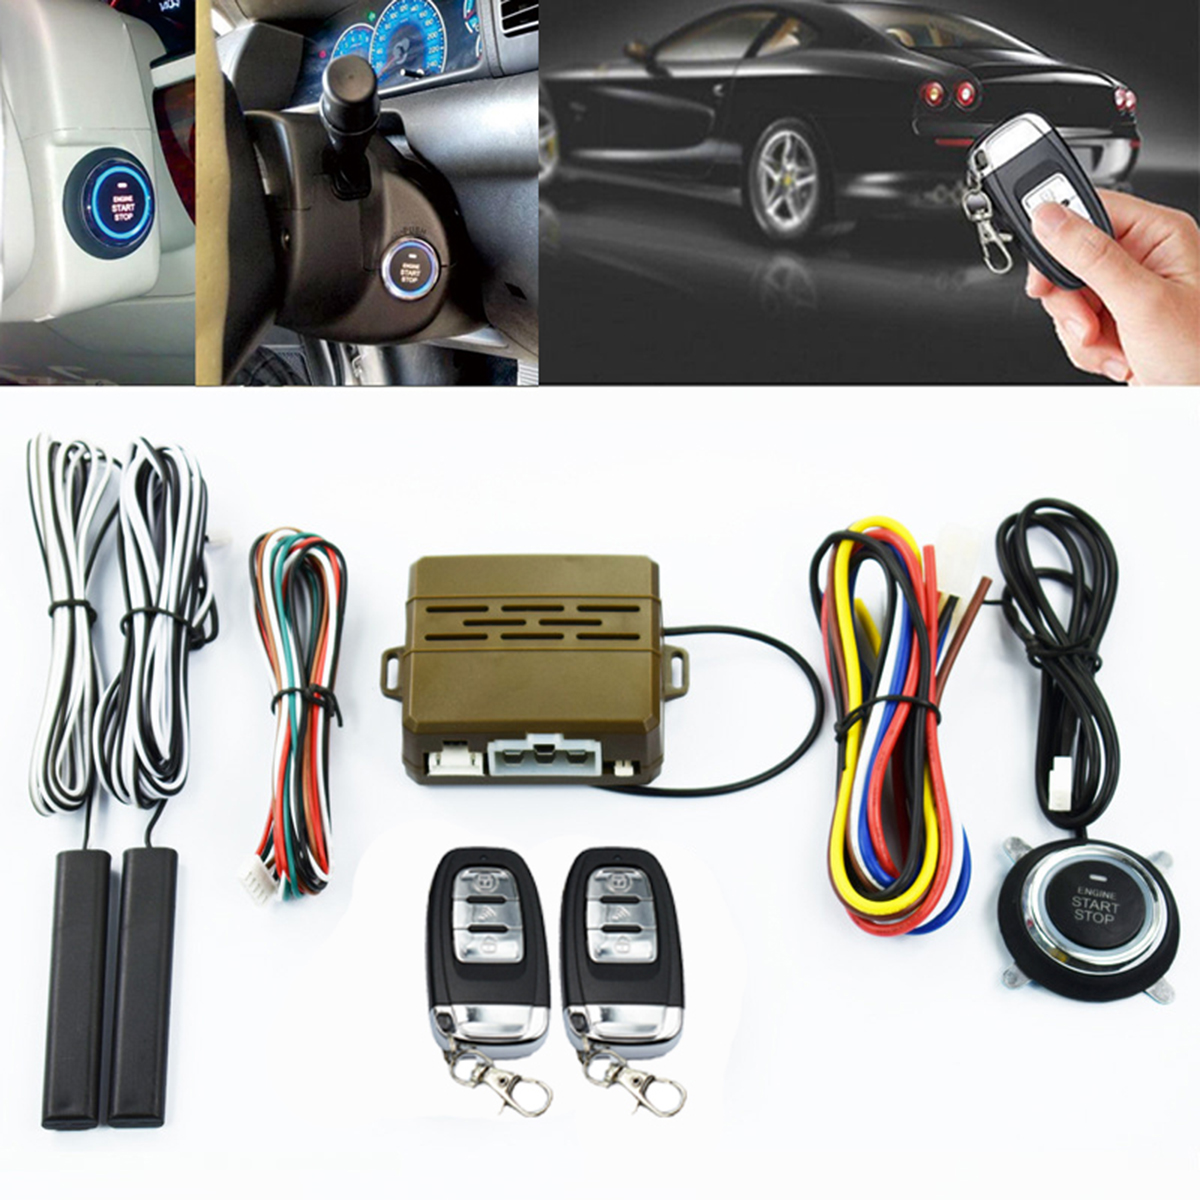 12V Entry Remote Button Starter Keyless Push PKE Ignition Car System Engine Alarm With 2 Smart remote control